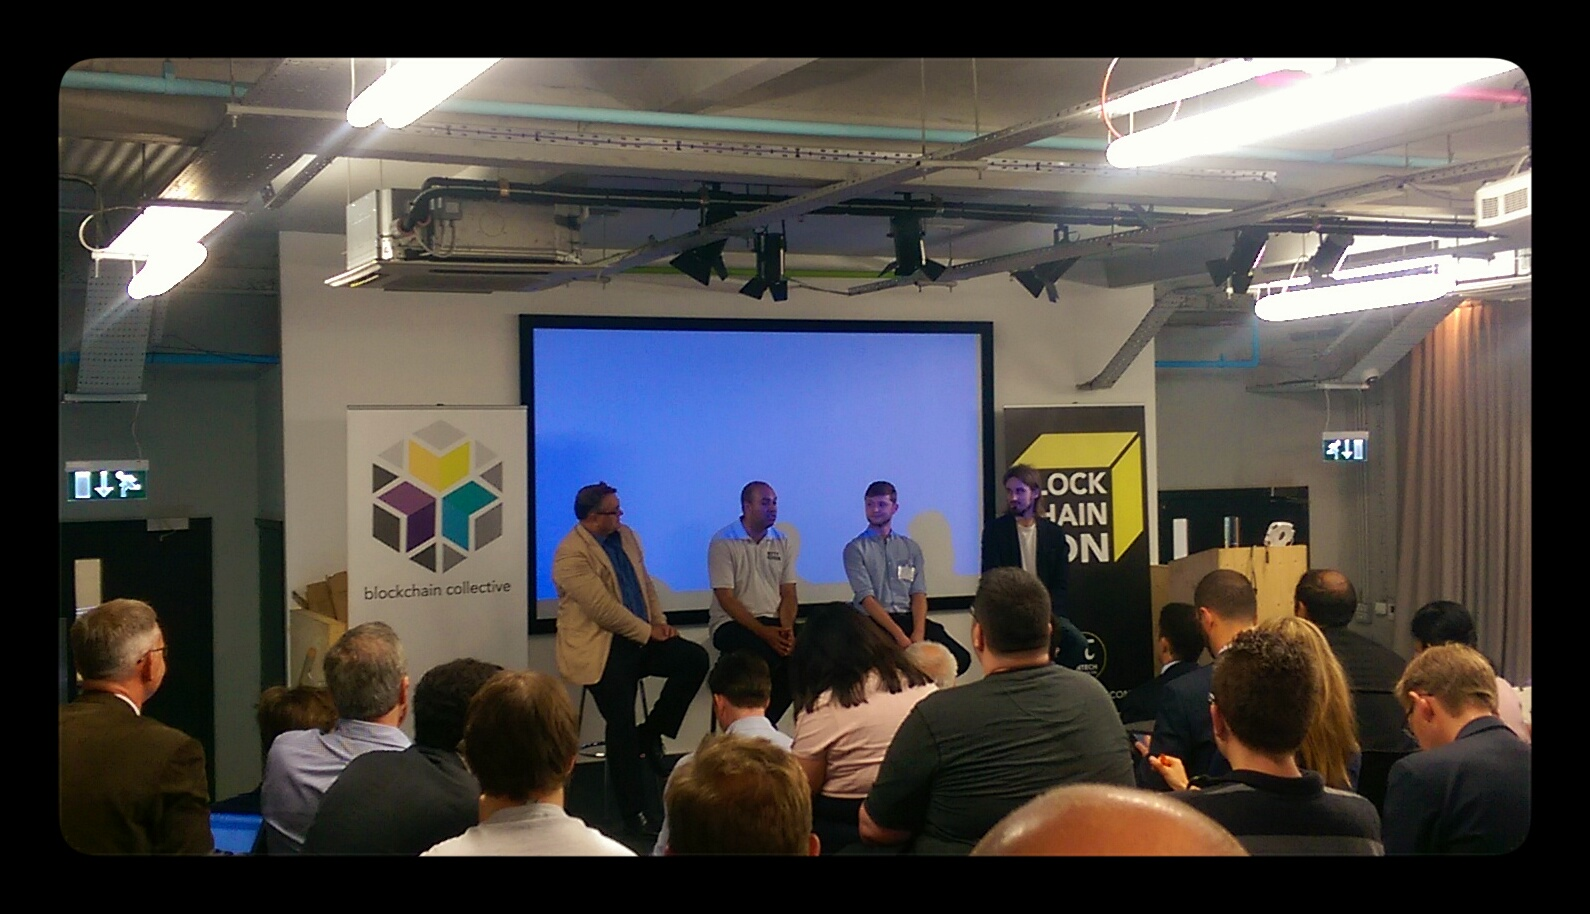 Blockchain Conference London 2015